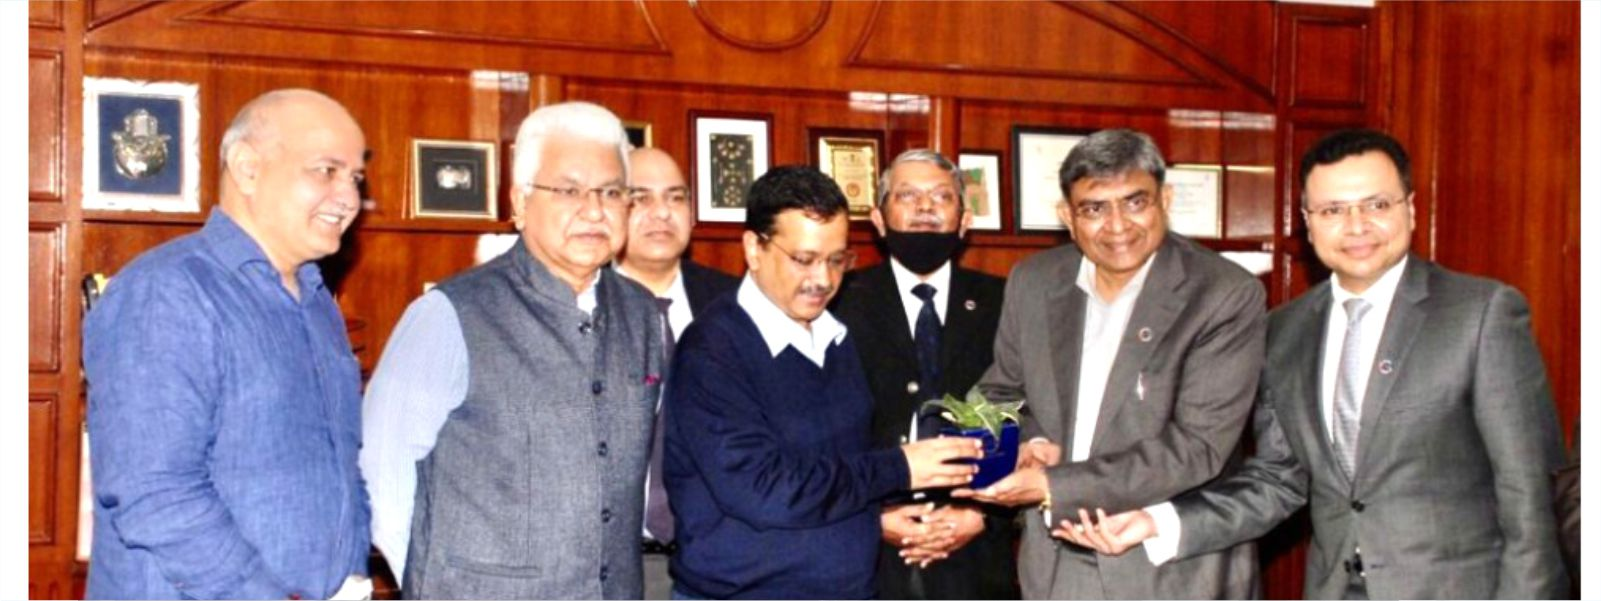 Meeting with Hon'ble Chief Minister of Delhi Shri Arvind Kejriwal and Shri Manish Sisodia, Dy. CM